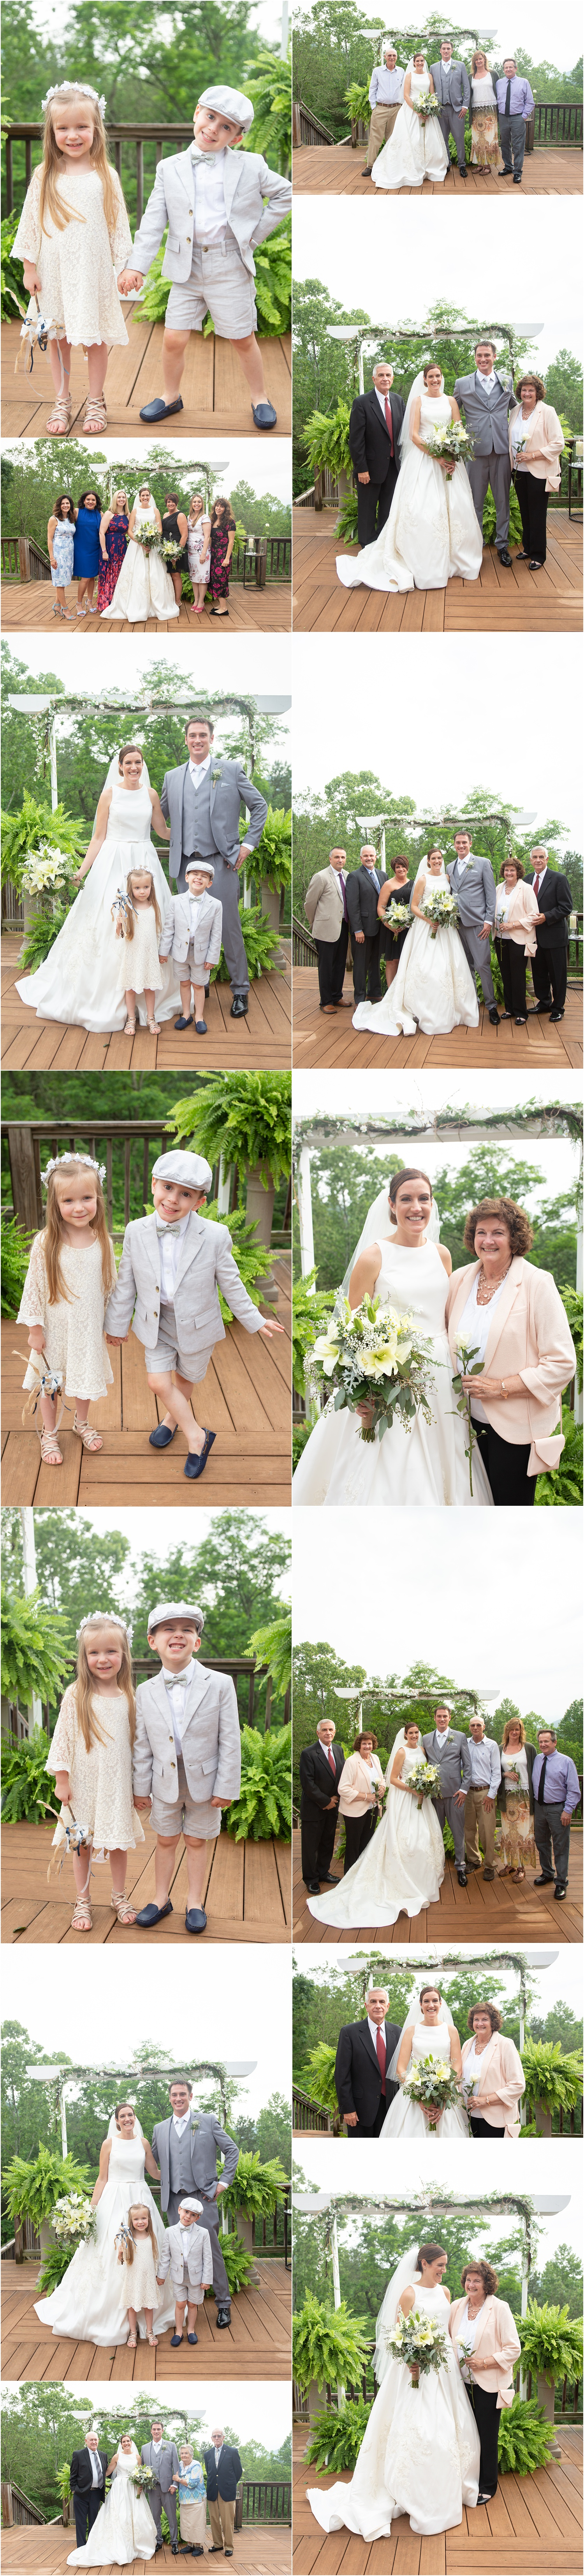 carrieandjeremy_maryngravesproduction_wvweddings_0542.jpg